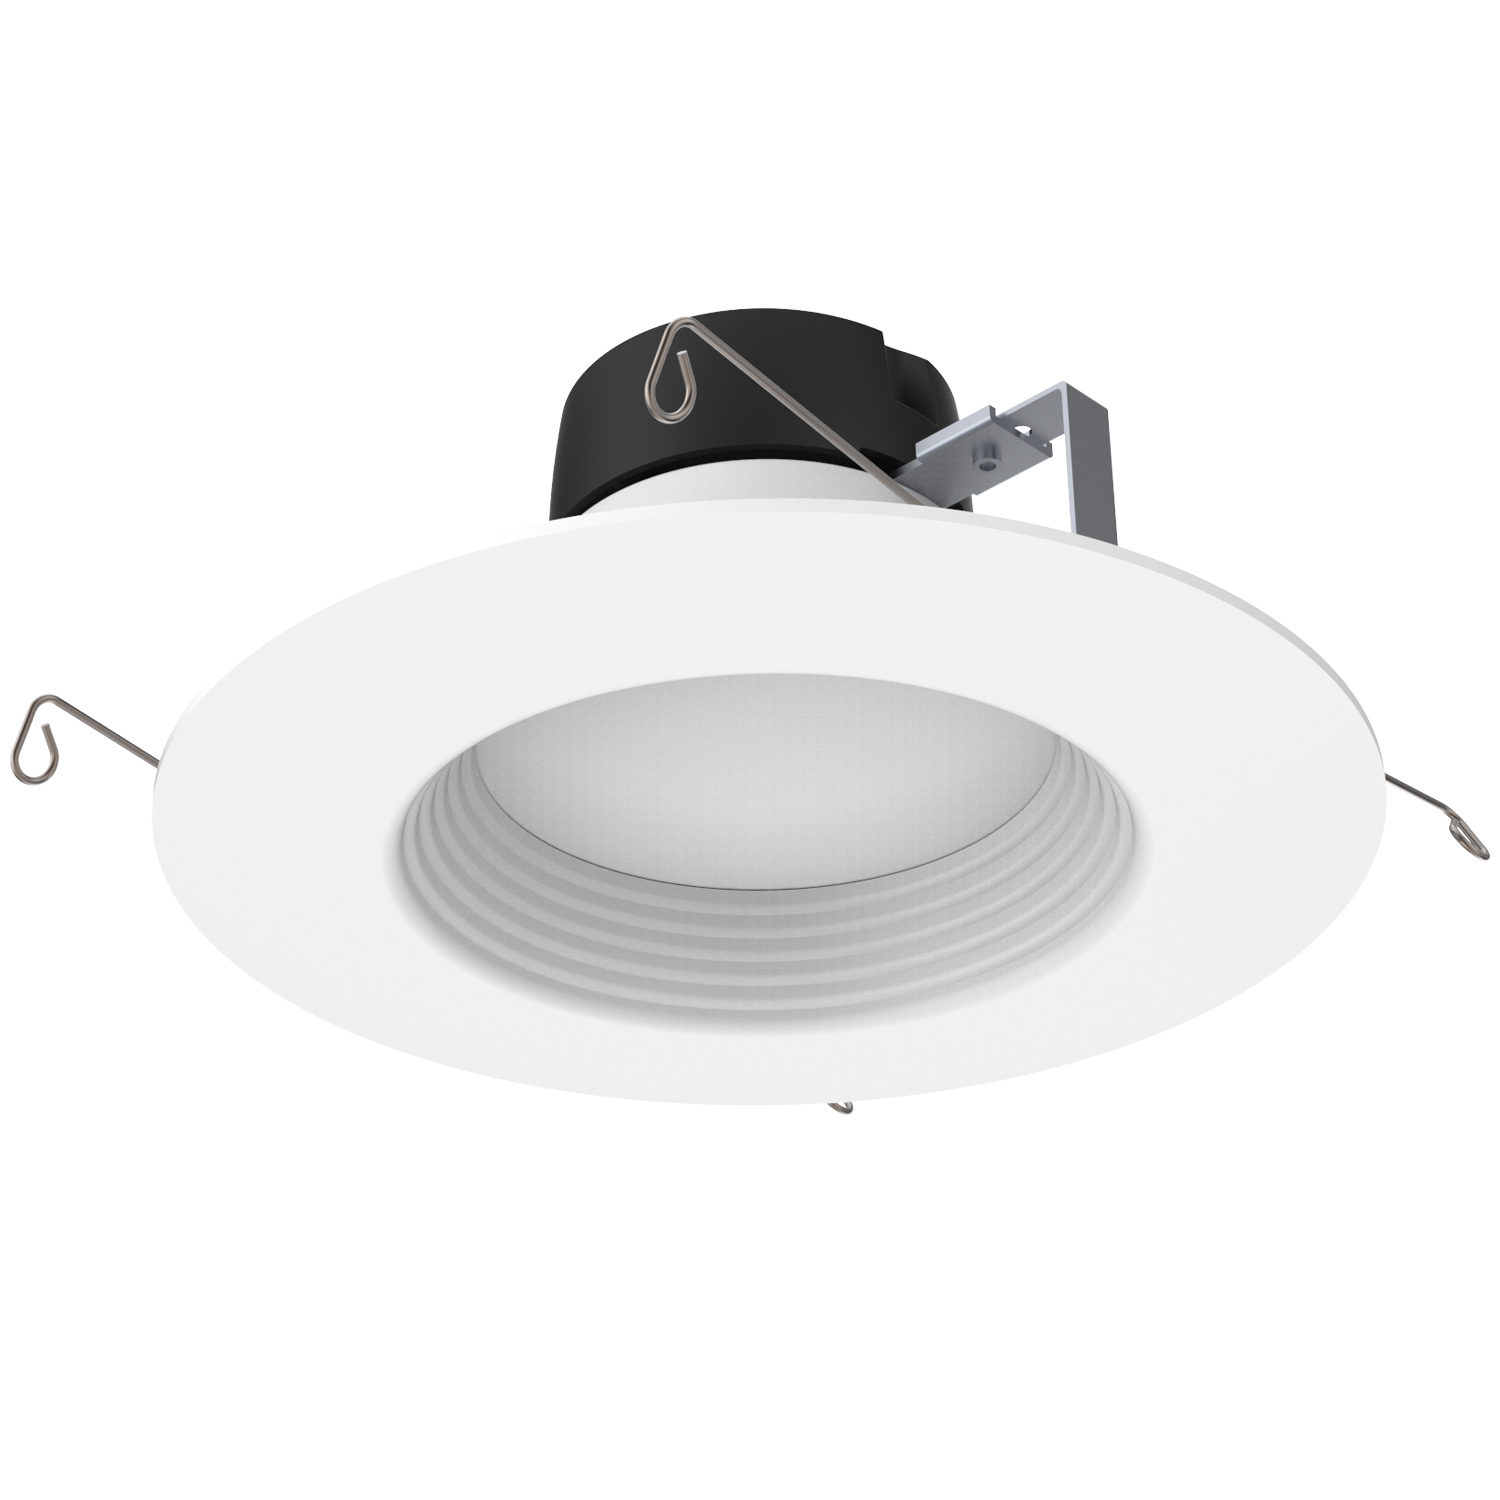 "DL6FR12/950/RT2/LED 99822 5""-6"" LED RETROFIT DOWNLIGHT 12W 5000K DIMMABLE E26 REPLACEABLE-WHITE TRIM-WHITE BAFFLE"